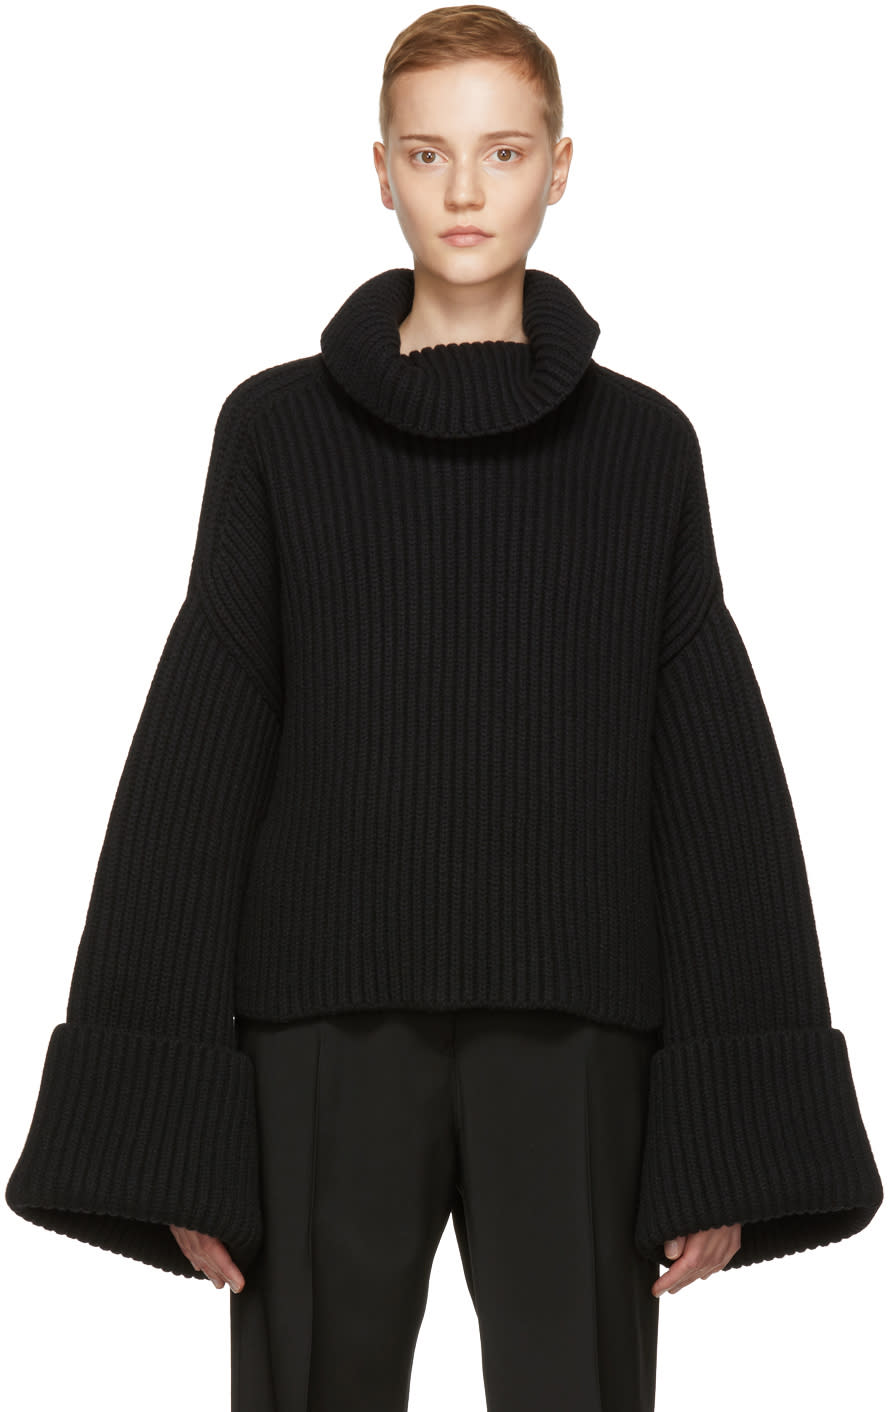 Image of Jil Sander Black Bell Sleeve Turtleneck